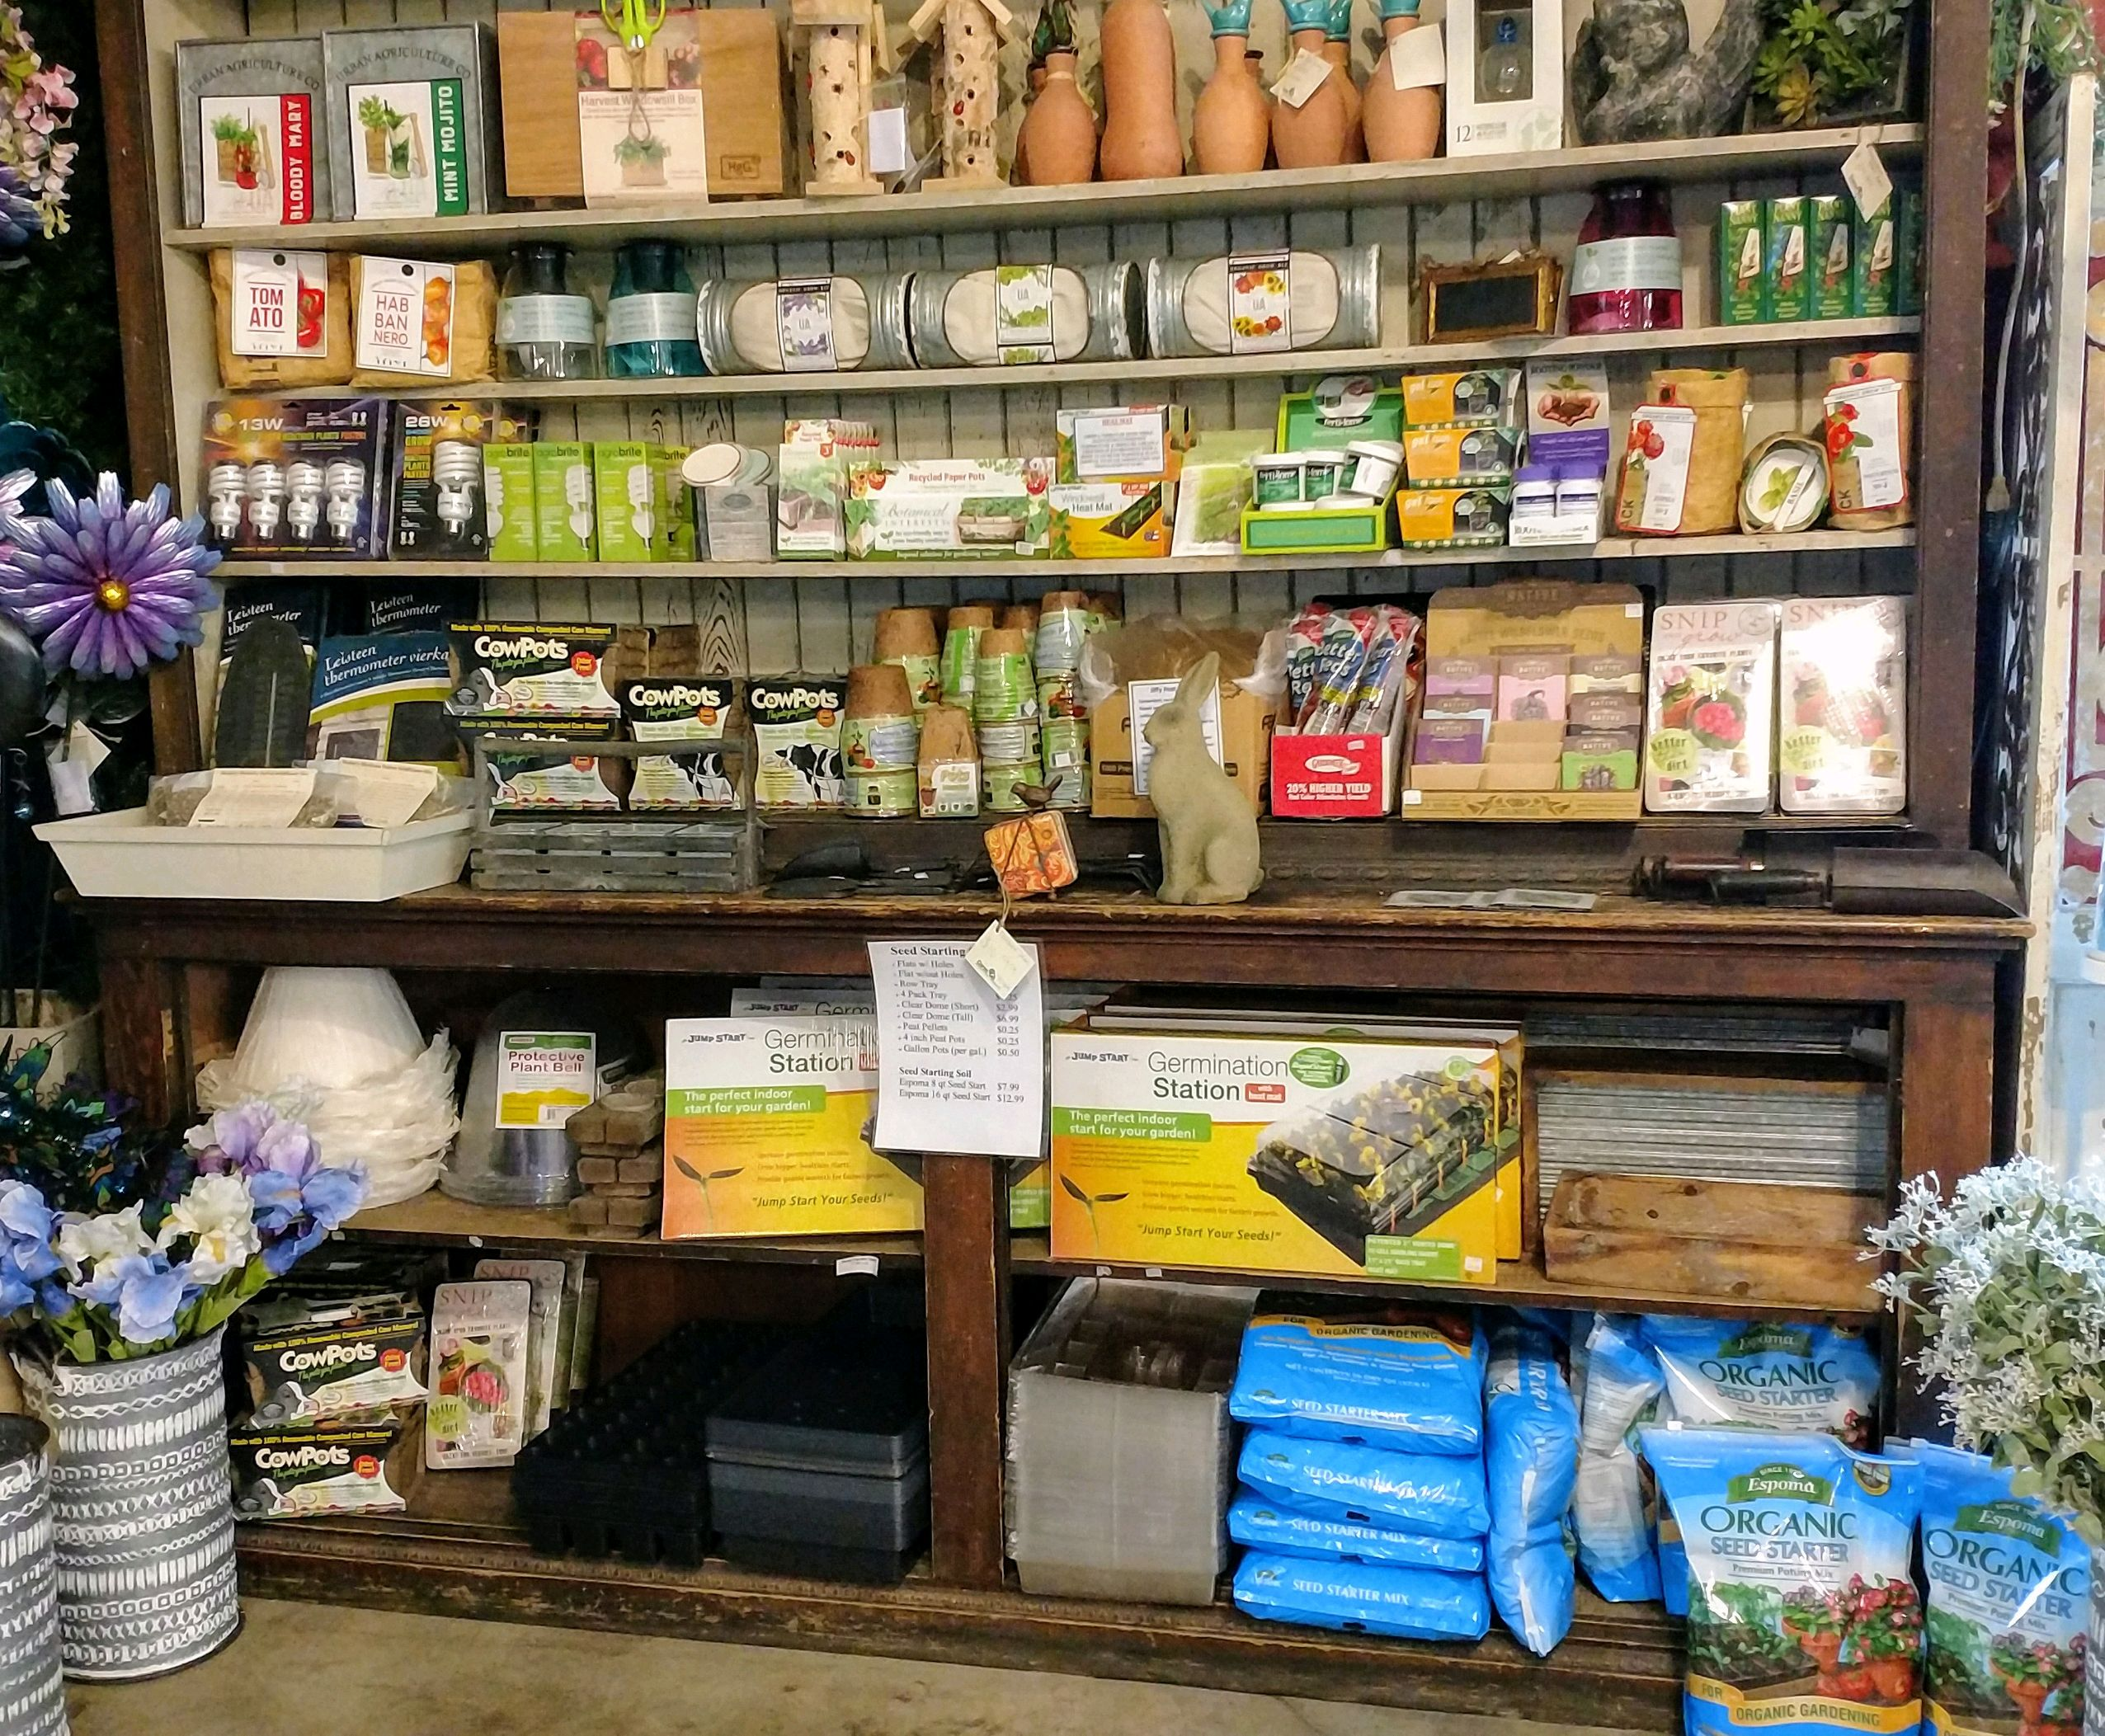 Planning what to plant this season? We have everything you need for a seed starting kit